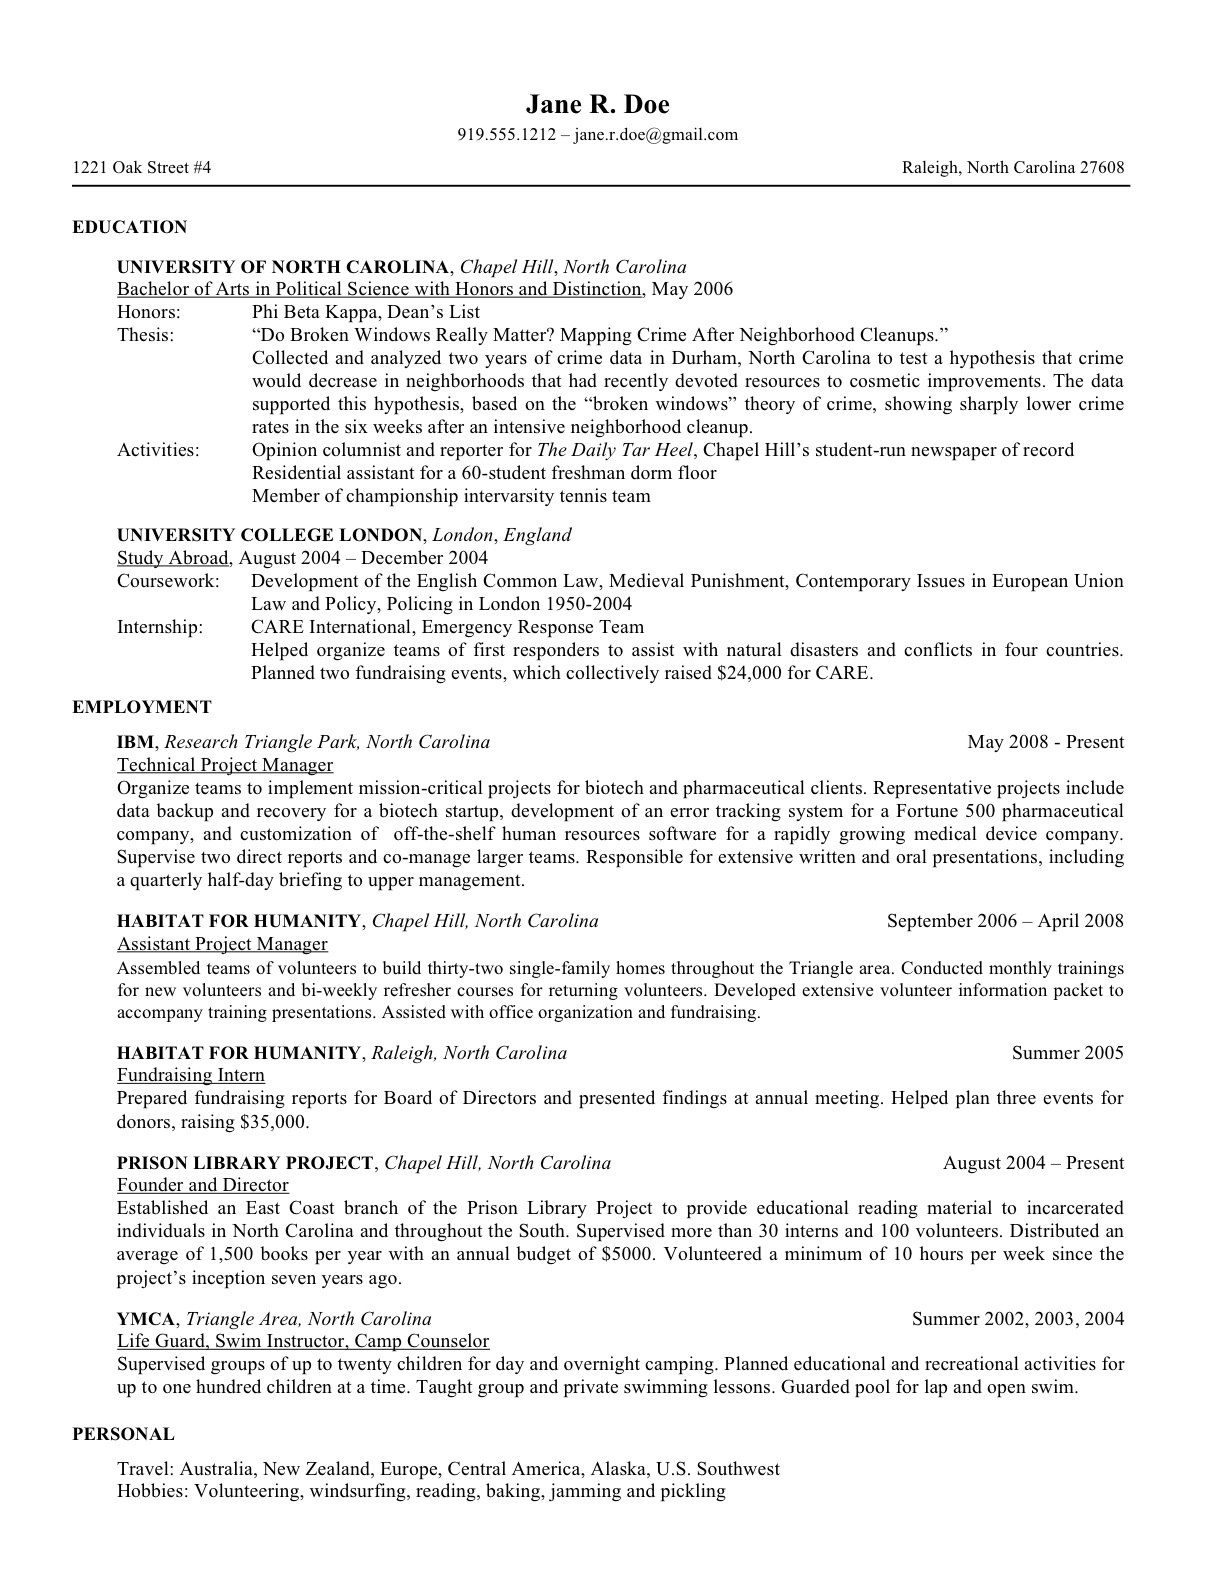 resume format for law school application